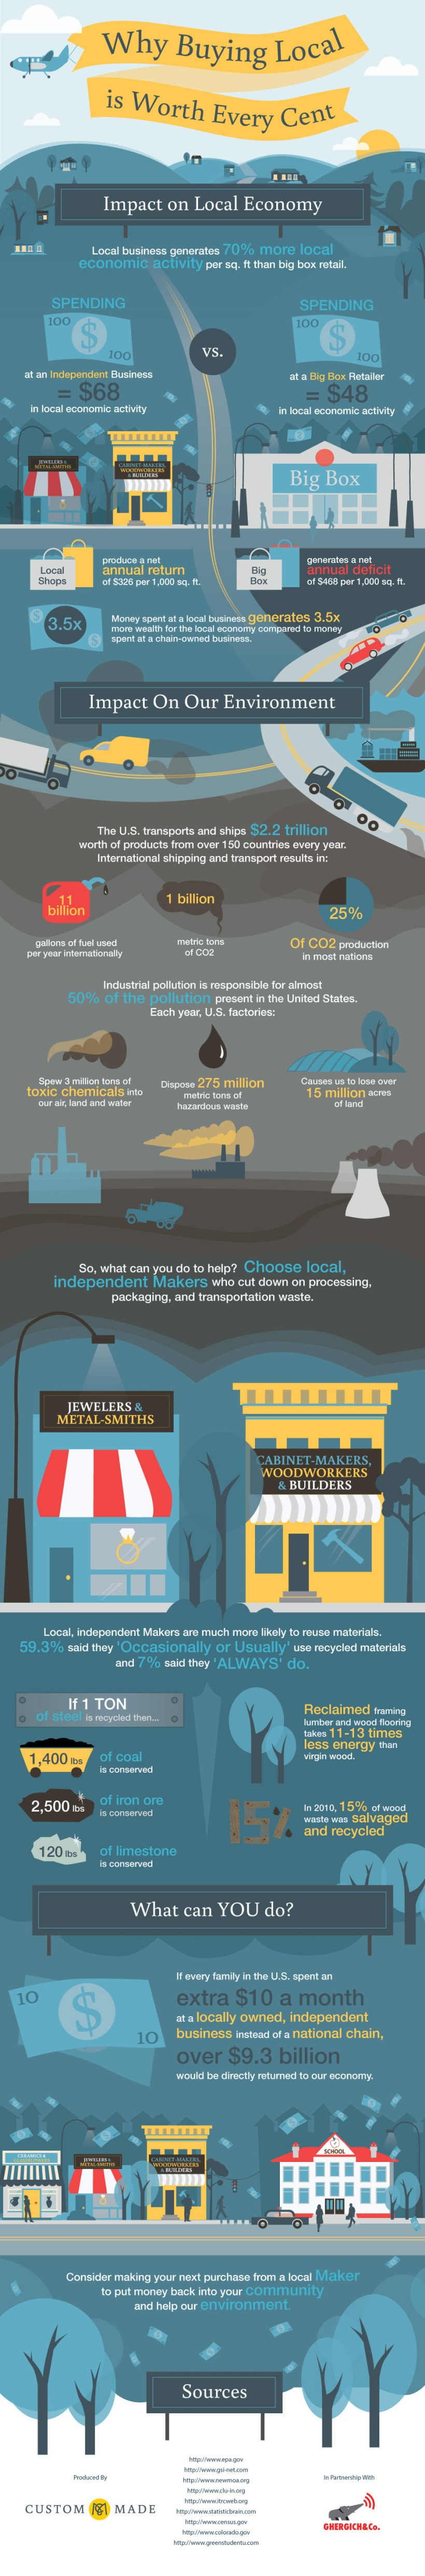 Why-Buying-Local-Is-Worth-Every-Cent-Infographic-infographicsmania